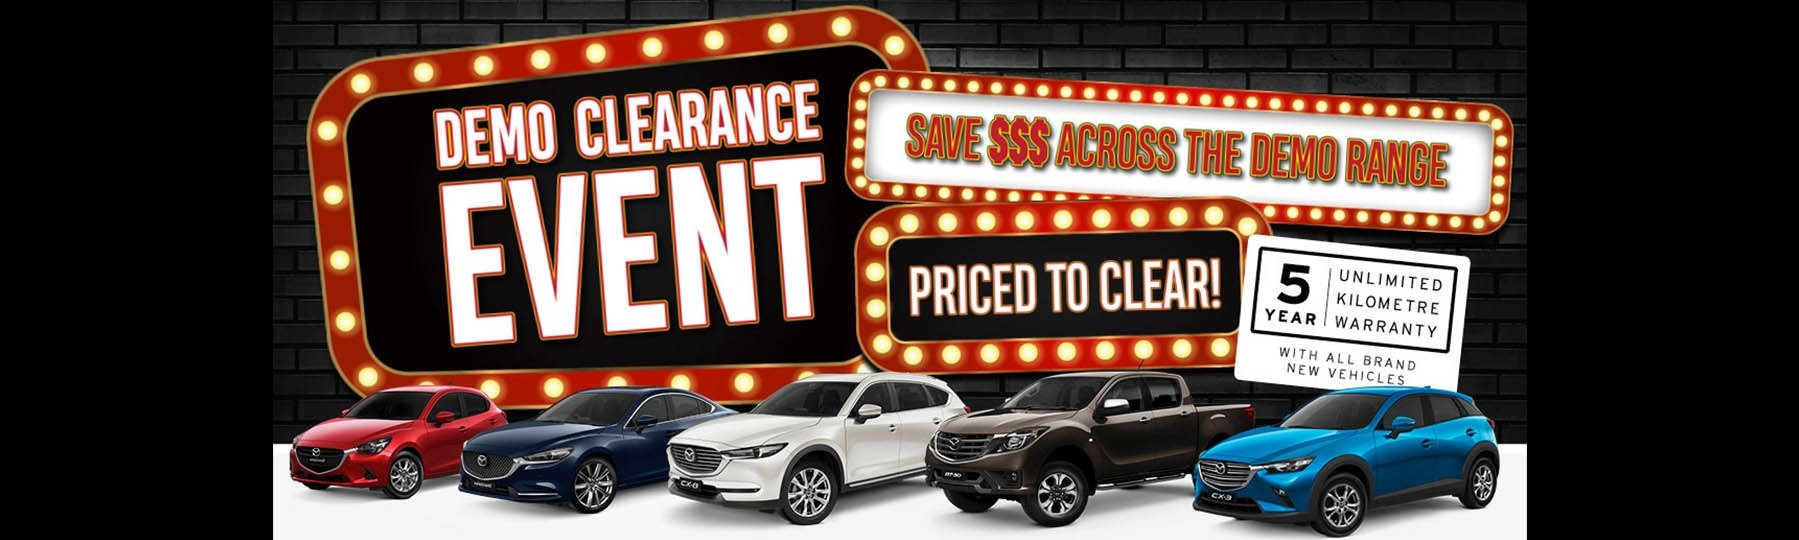 Demo Clearance Event